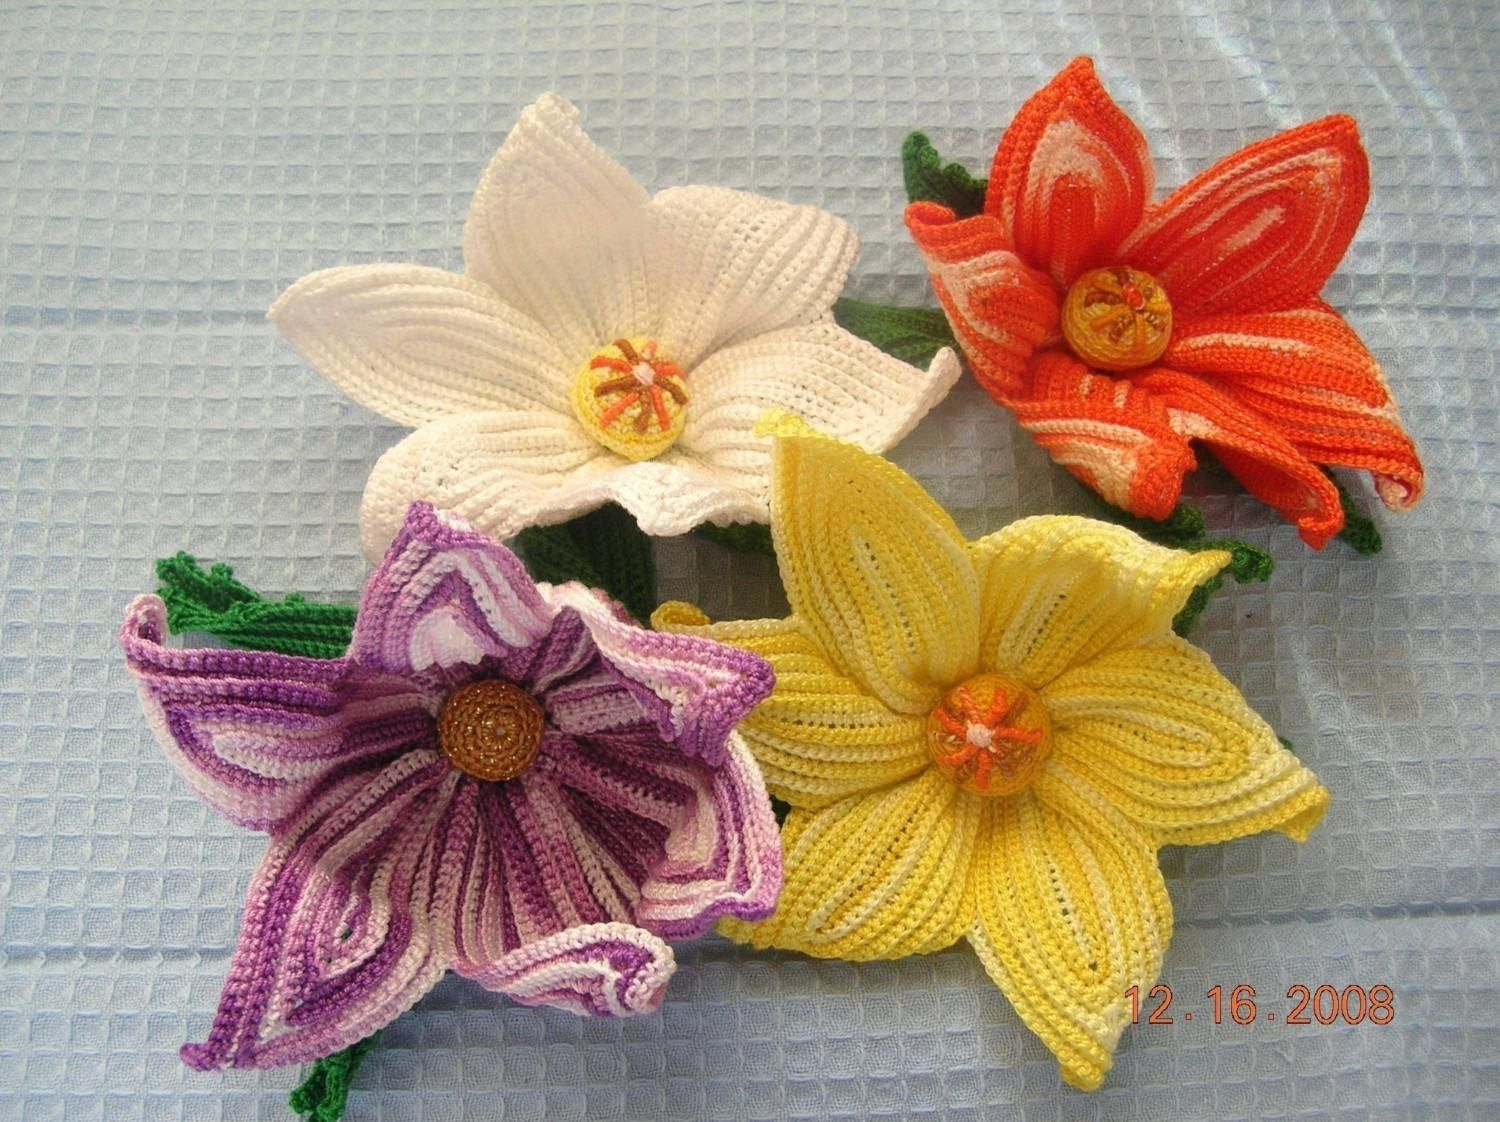 Wallpapers Backgrounds - Learn crochet flowers craft projects ...